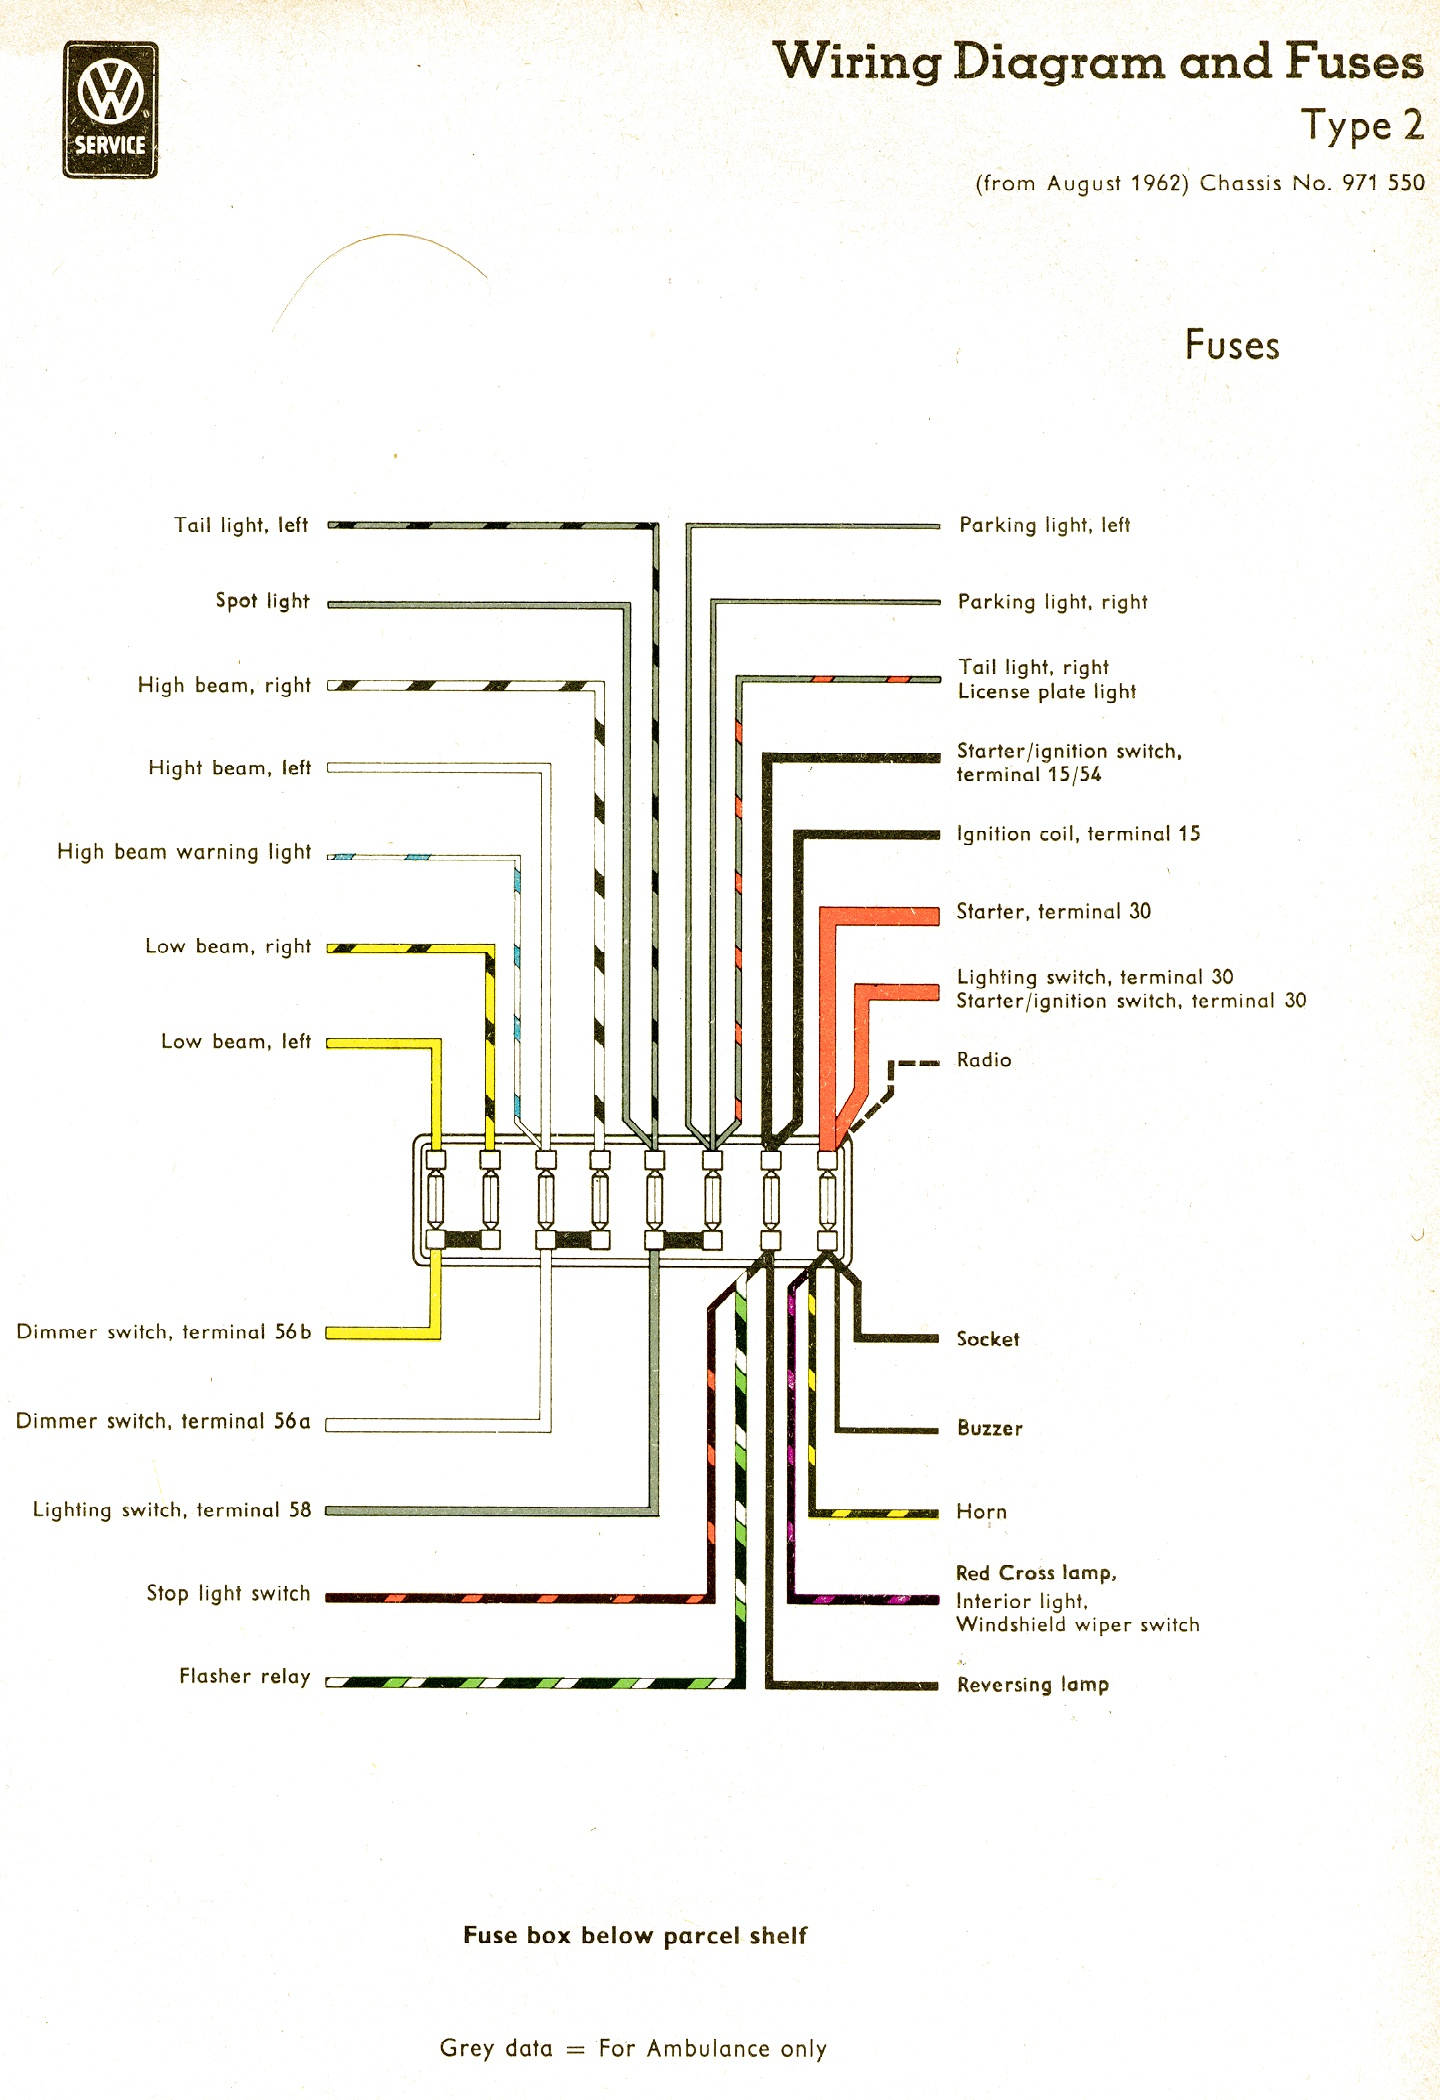 bus 62 fuse vw wiring diagrams fuse box diagram for 1977 chevy c10 at crackthecode.co